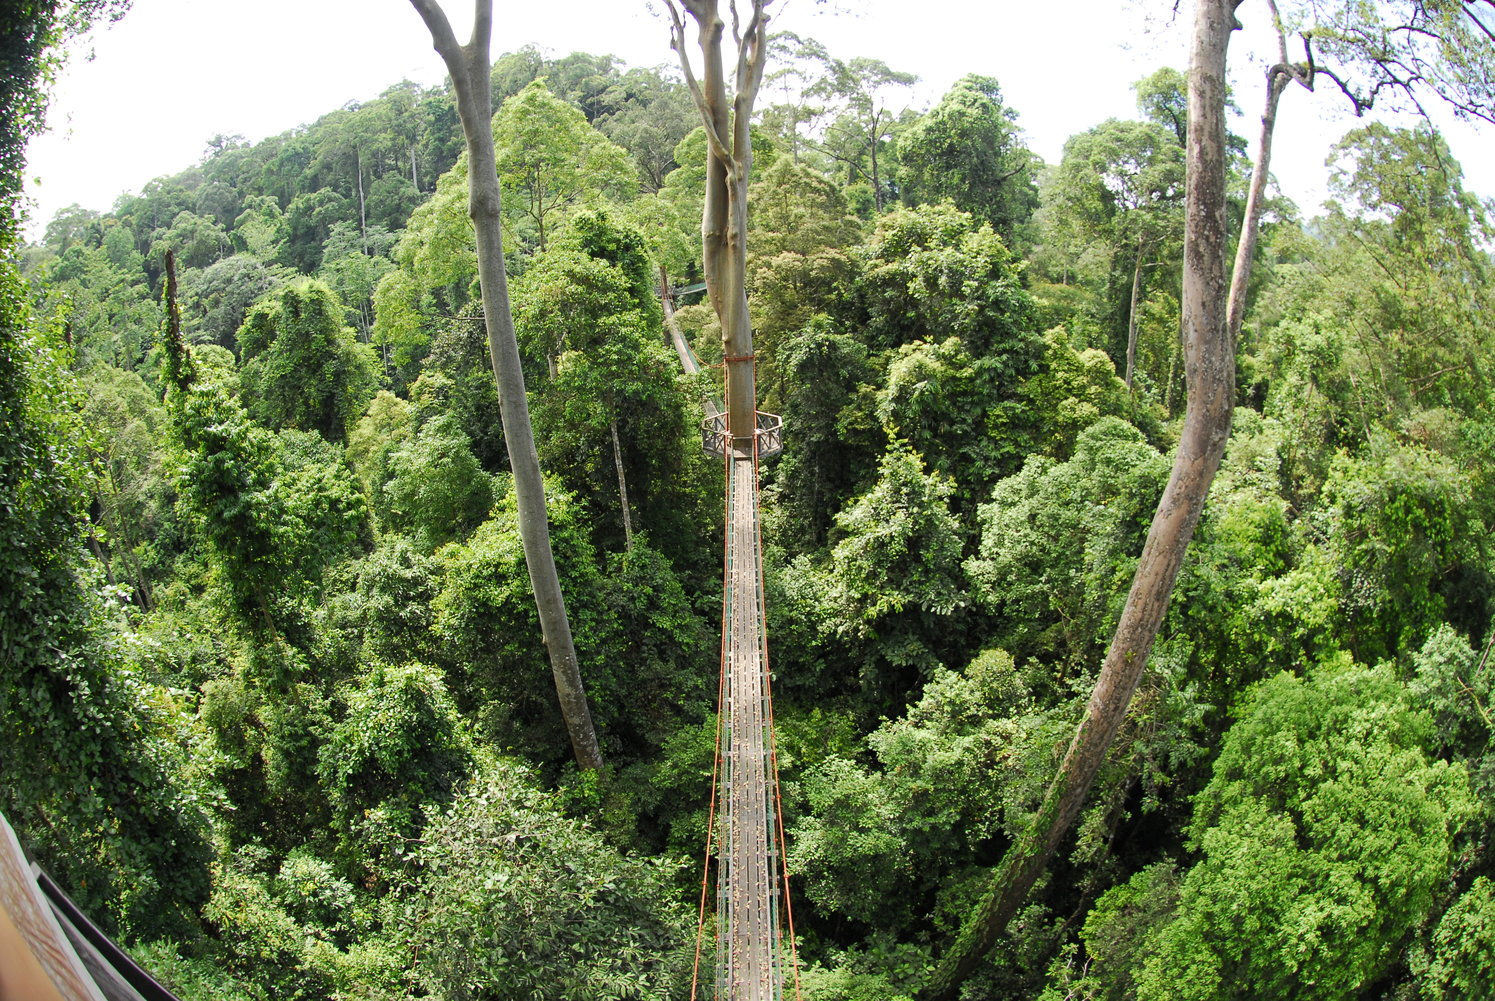 Borneo-Danum-Valley-walkway-by-Simon-Bellingham